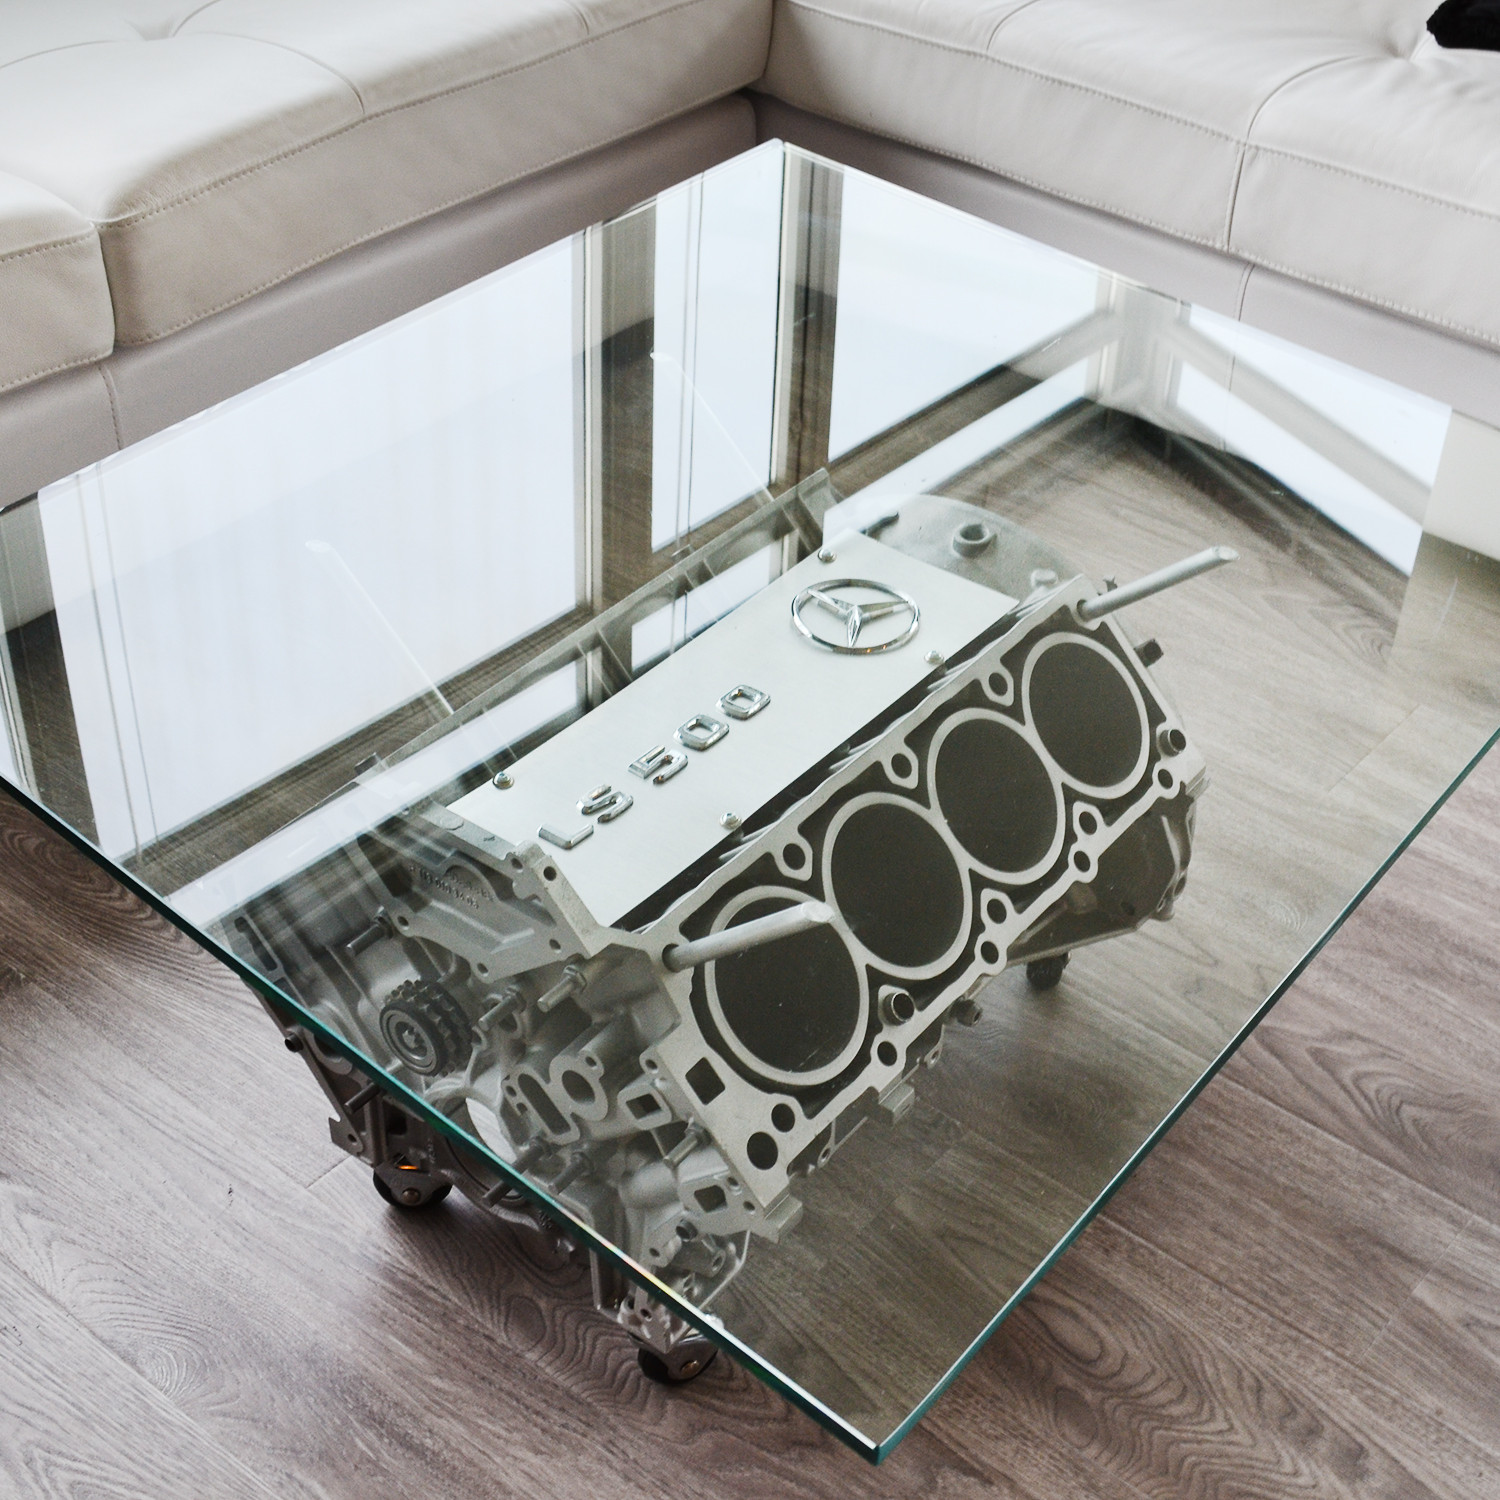 V8 Mercedes CLS 500 Coffee Table